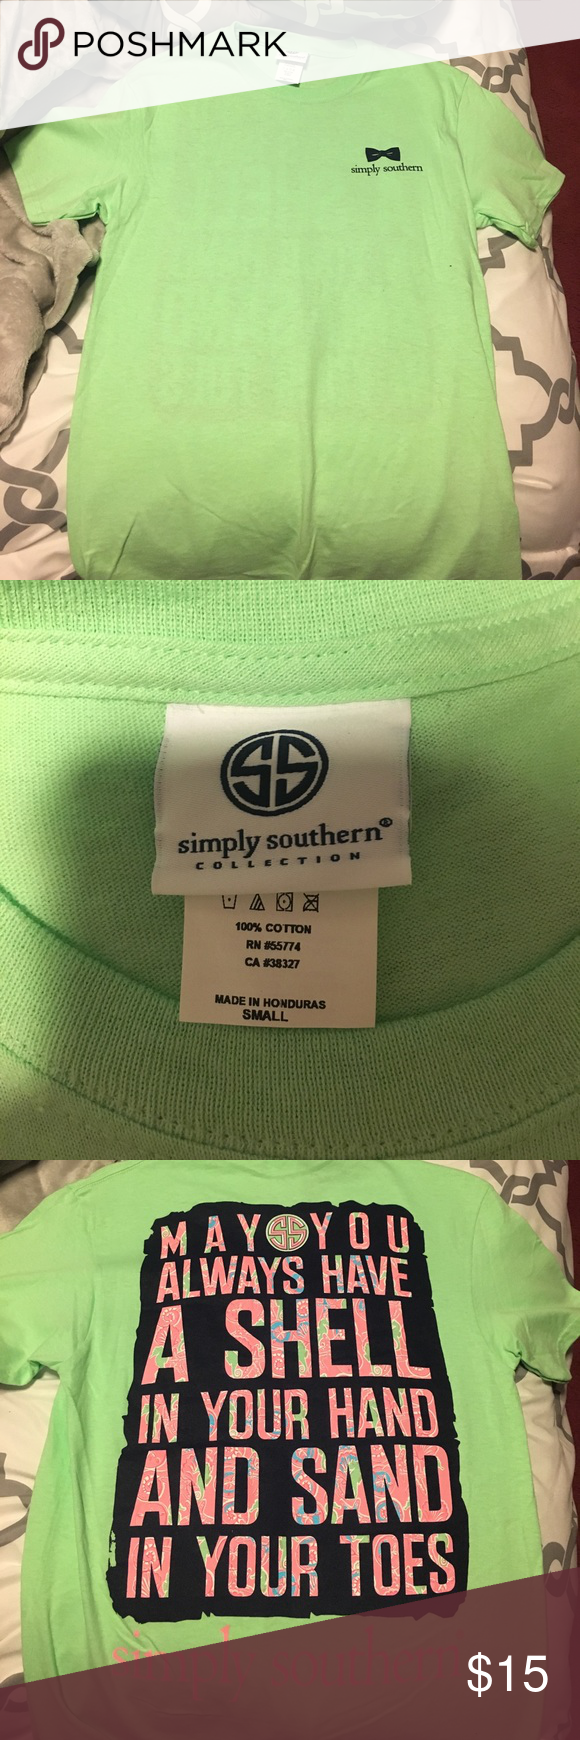 """Simply Southern t-shirt (small) Green Simply Southern t-shirt, size small, never worn! The back reads, """"may you always have a shell in your hand and sand in your toes"""" Simply Southern Tops Tees - Short Sleeve"""